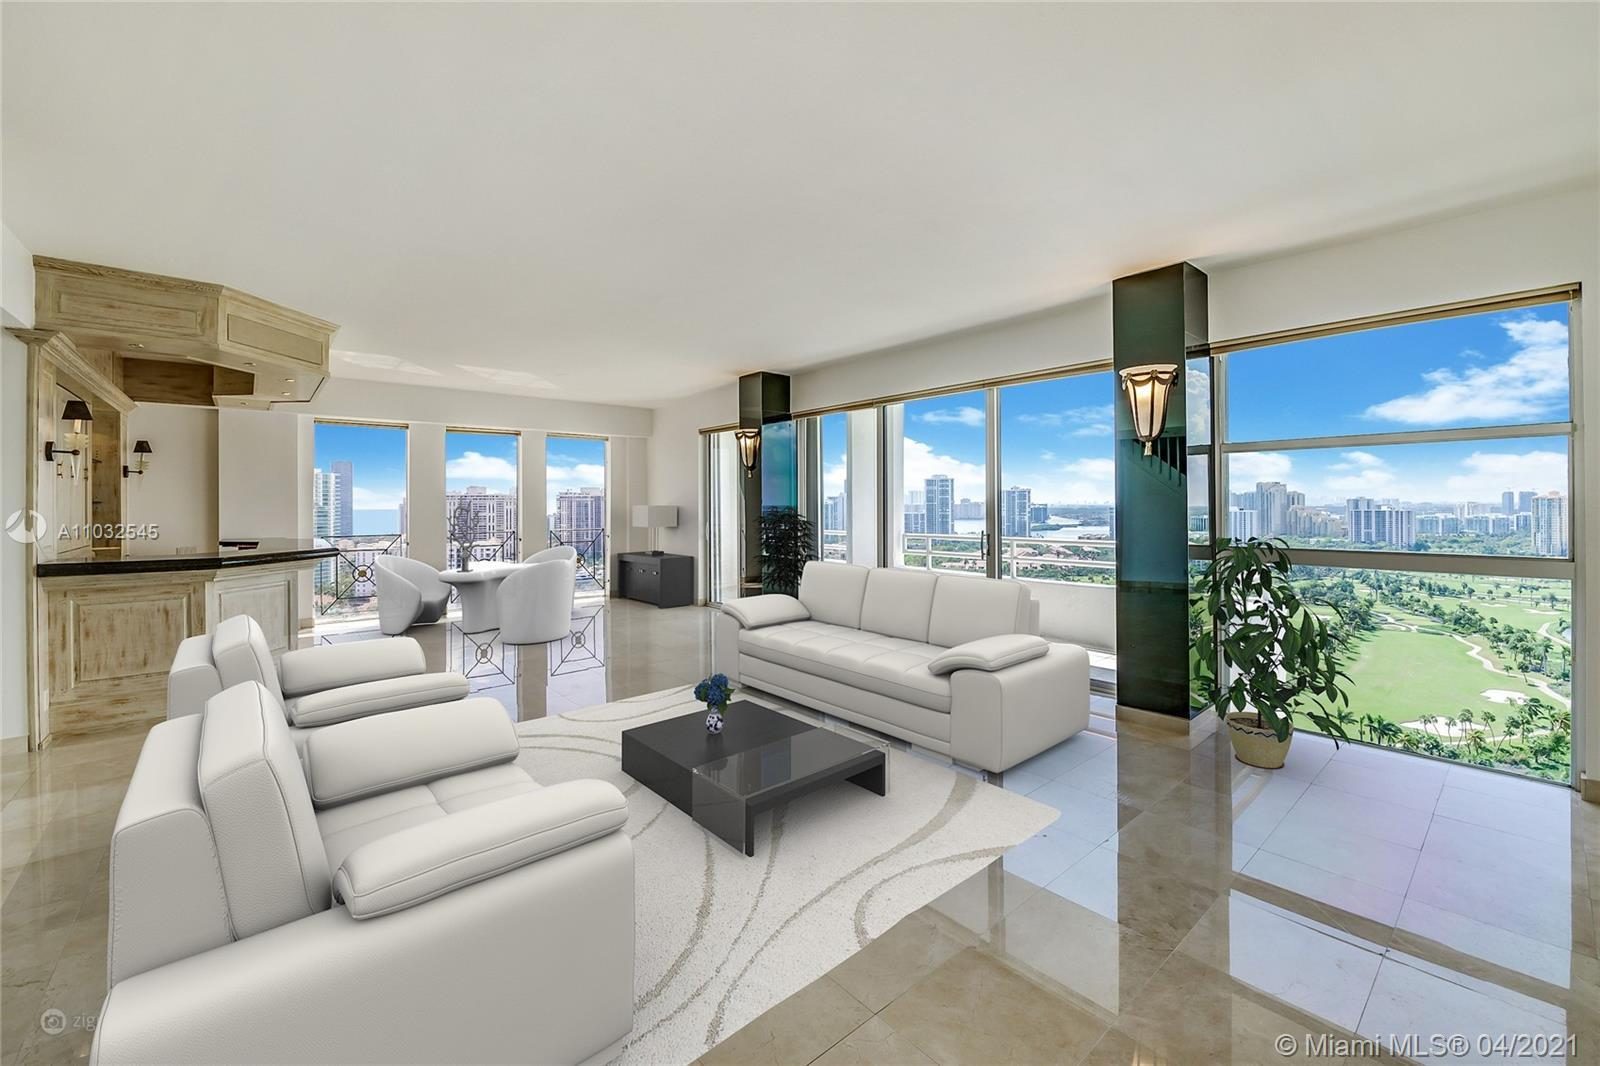 Penthouse – 27th Floor high -- One of a kind 5,500 SF - 5BR 3.5Ba - overlooking the Ocean, Inter-coa